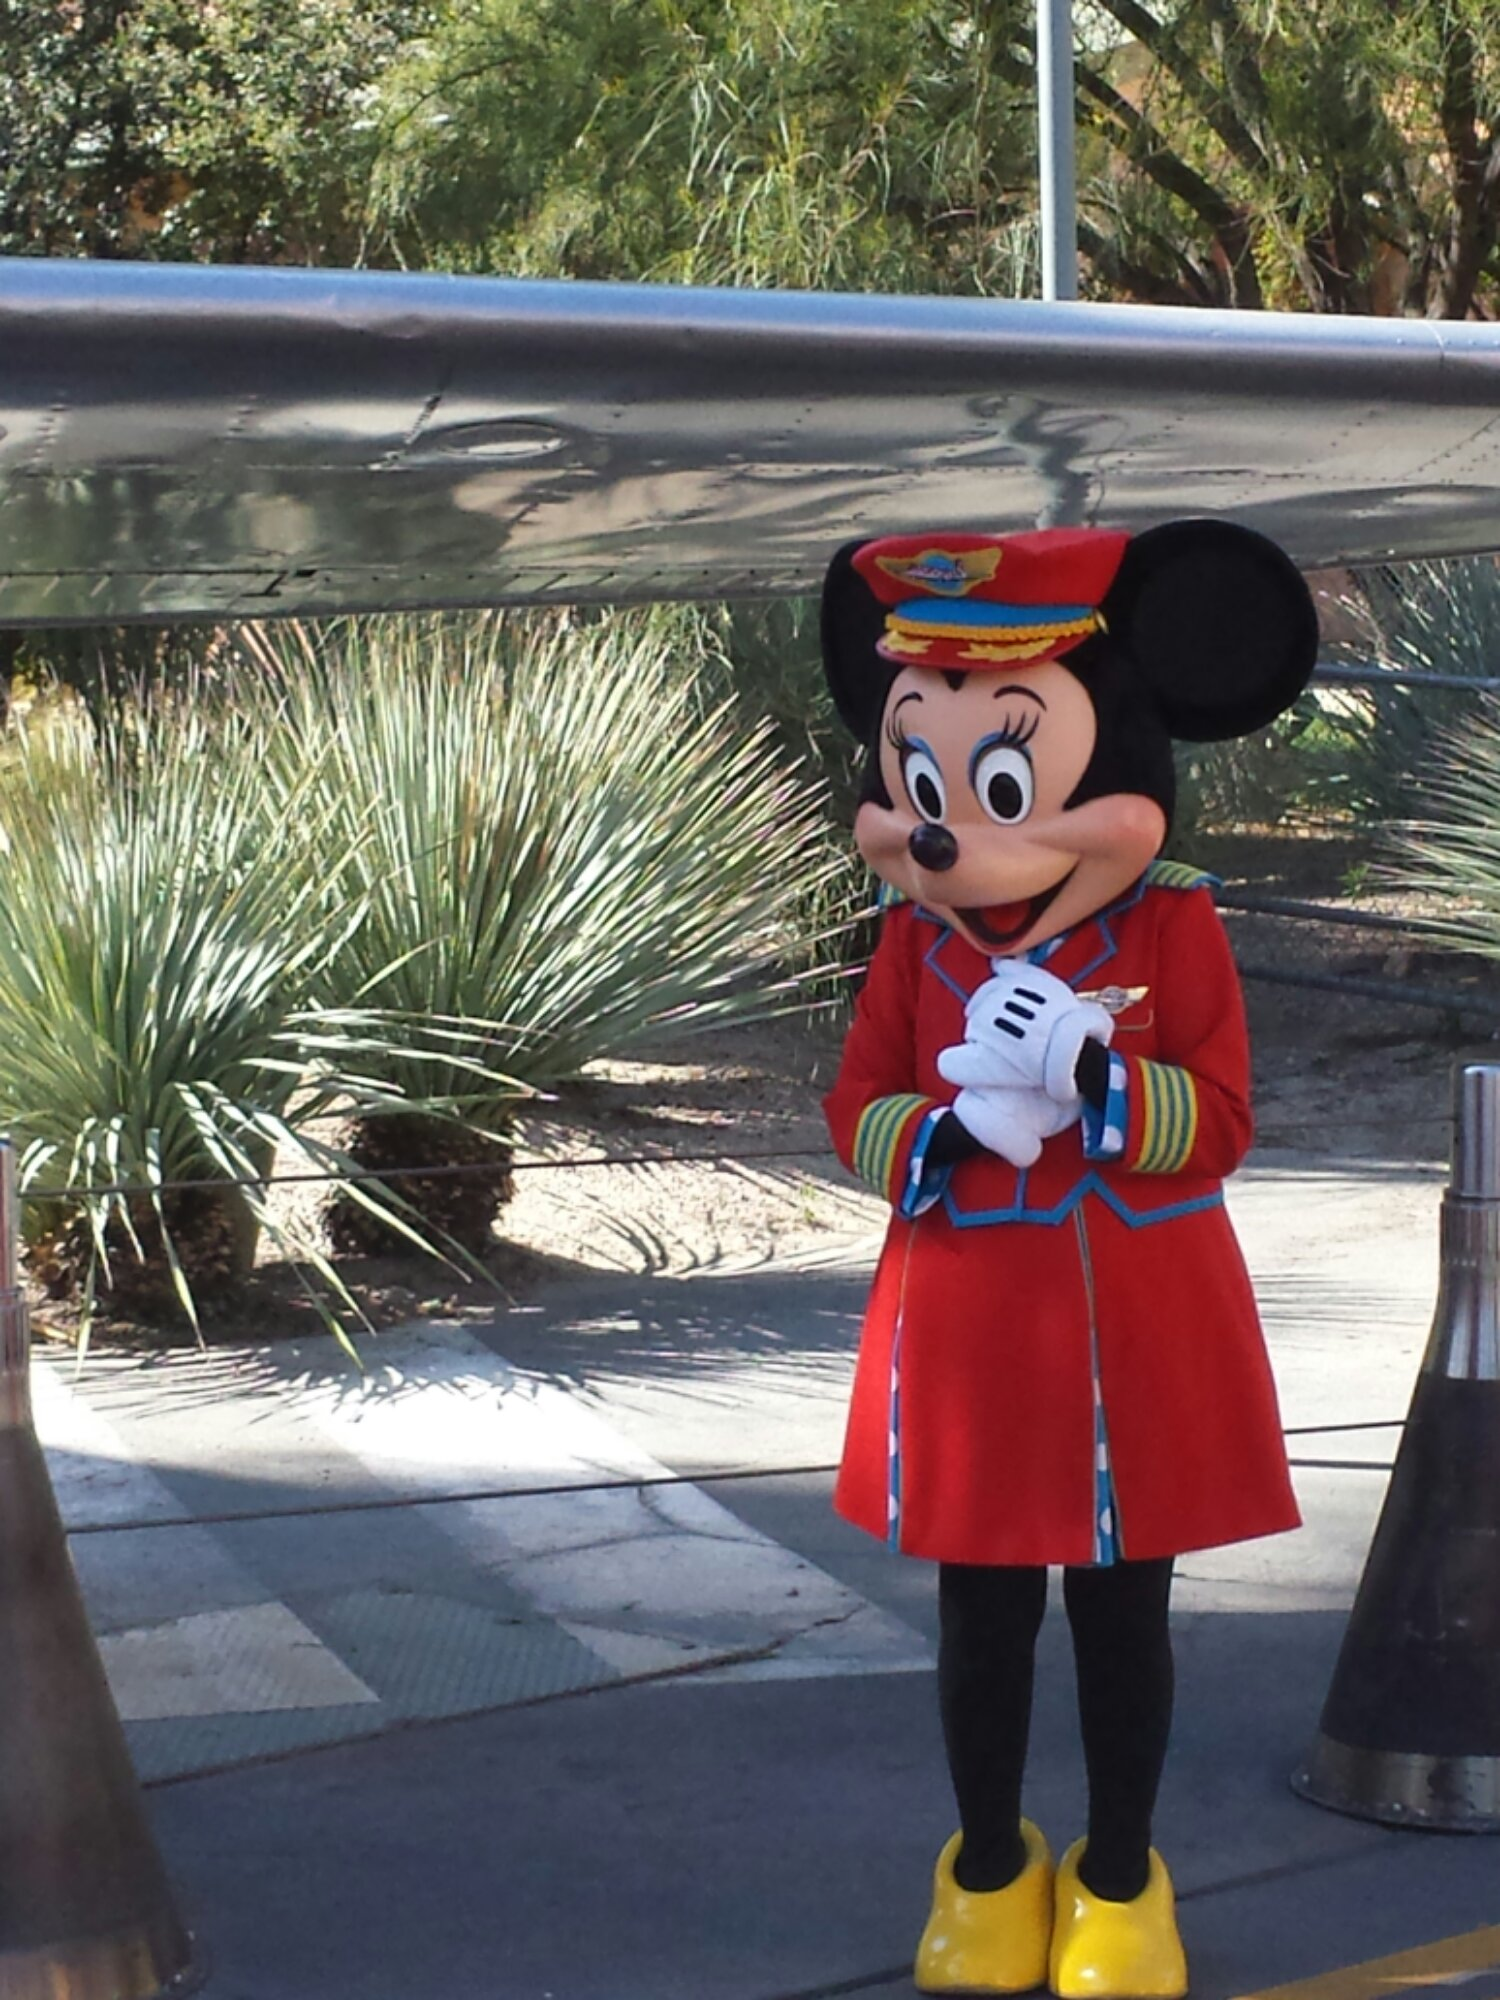 Even though the show is long gone Minnie still greets guests in Condor Flats in her Fly Girls costume